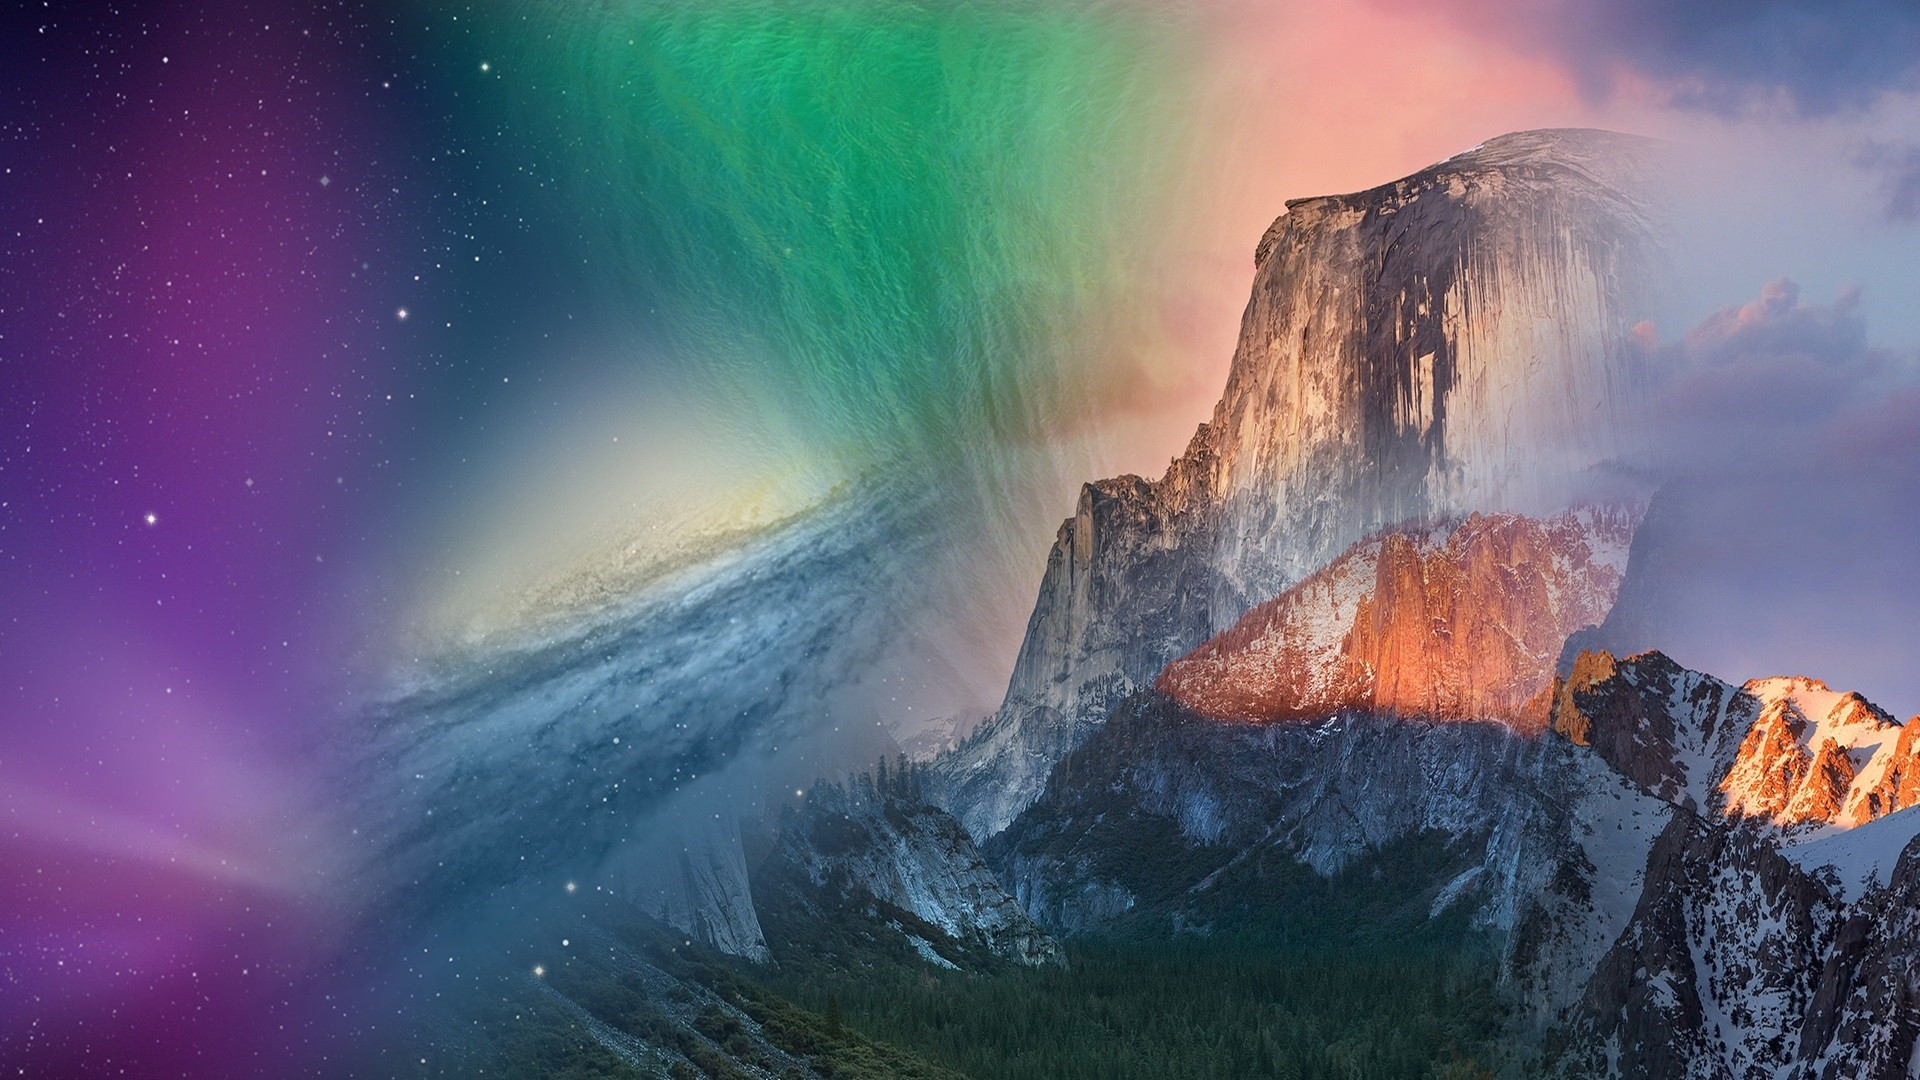 Macbook Pro PC Wallpaper